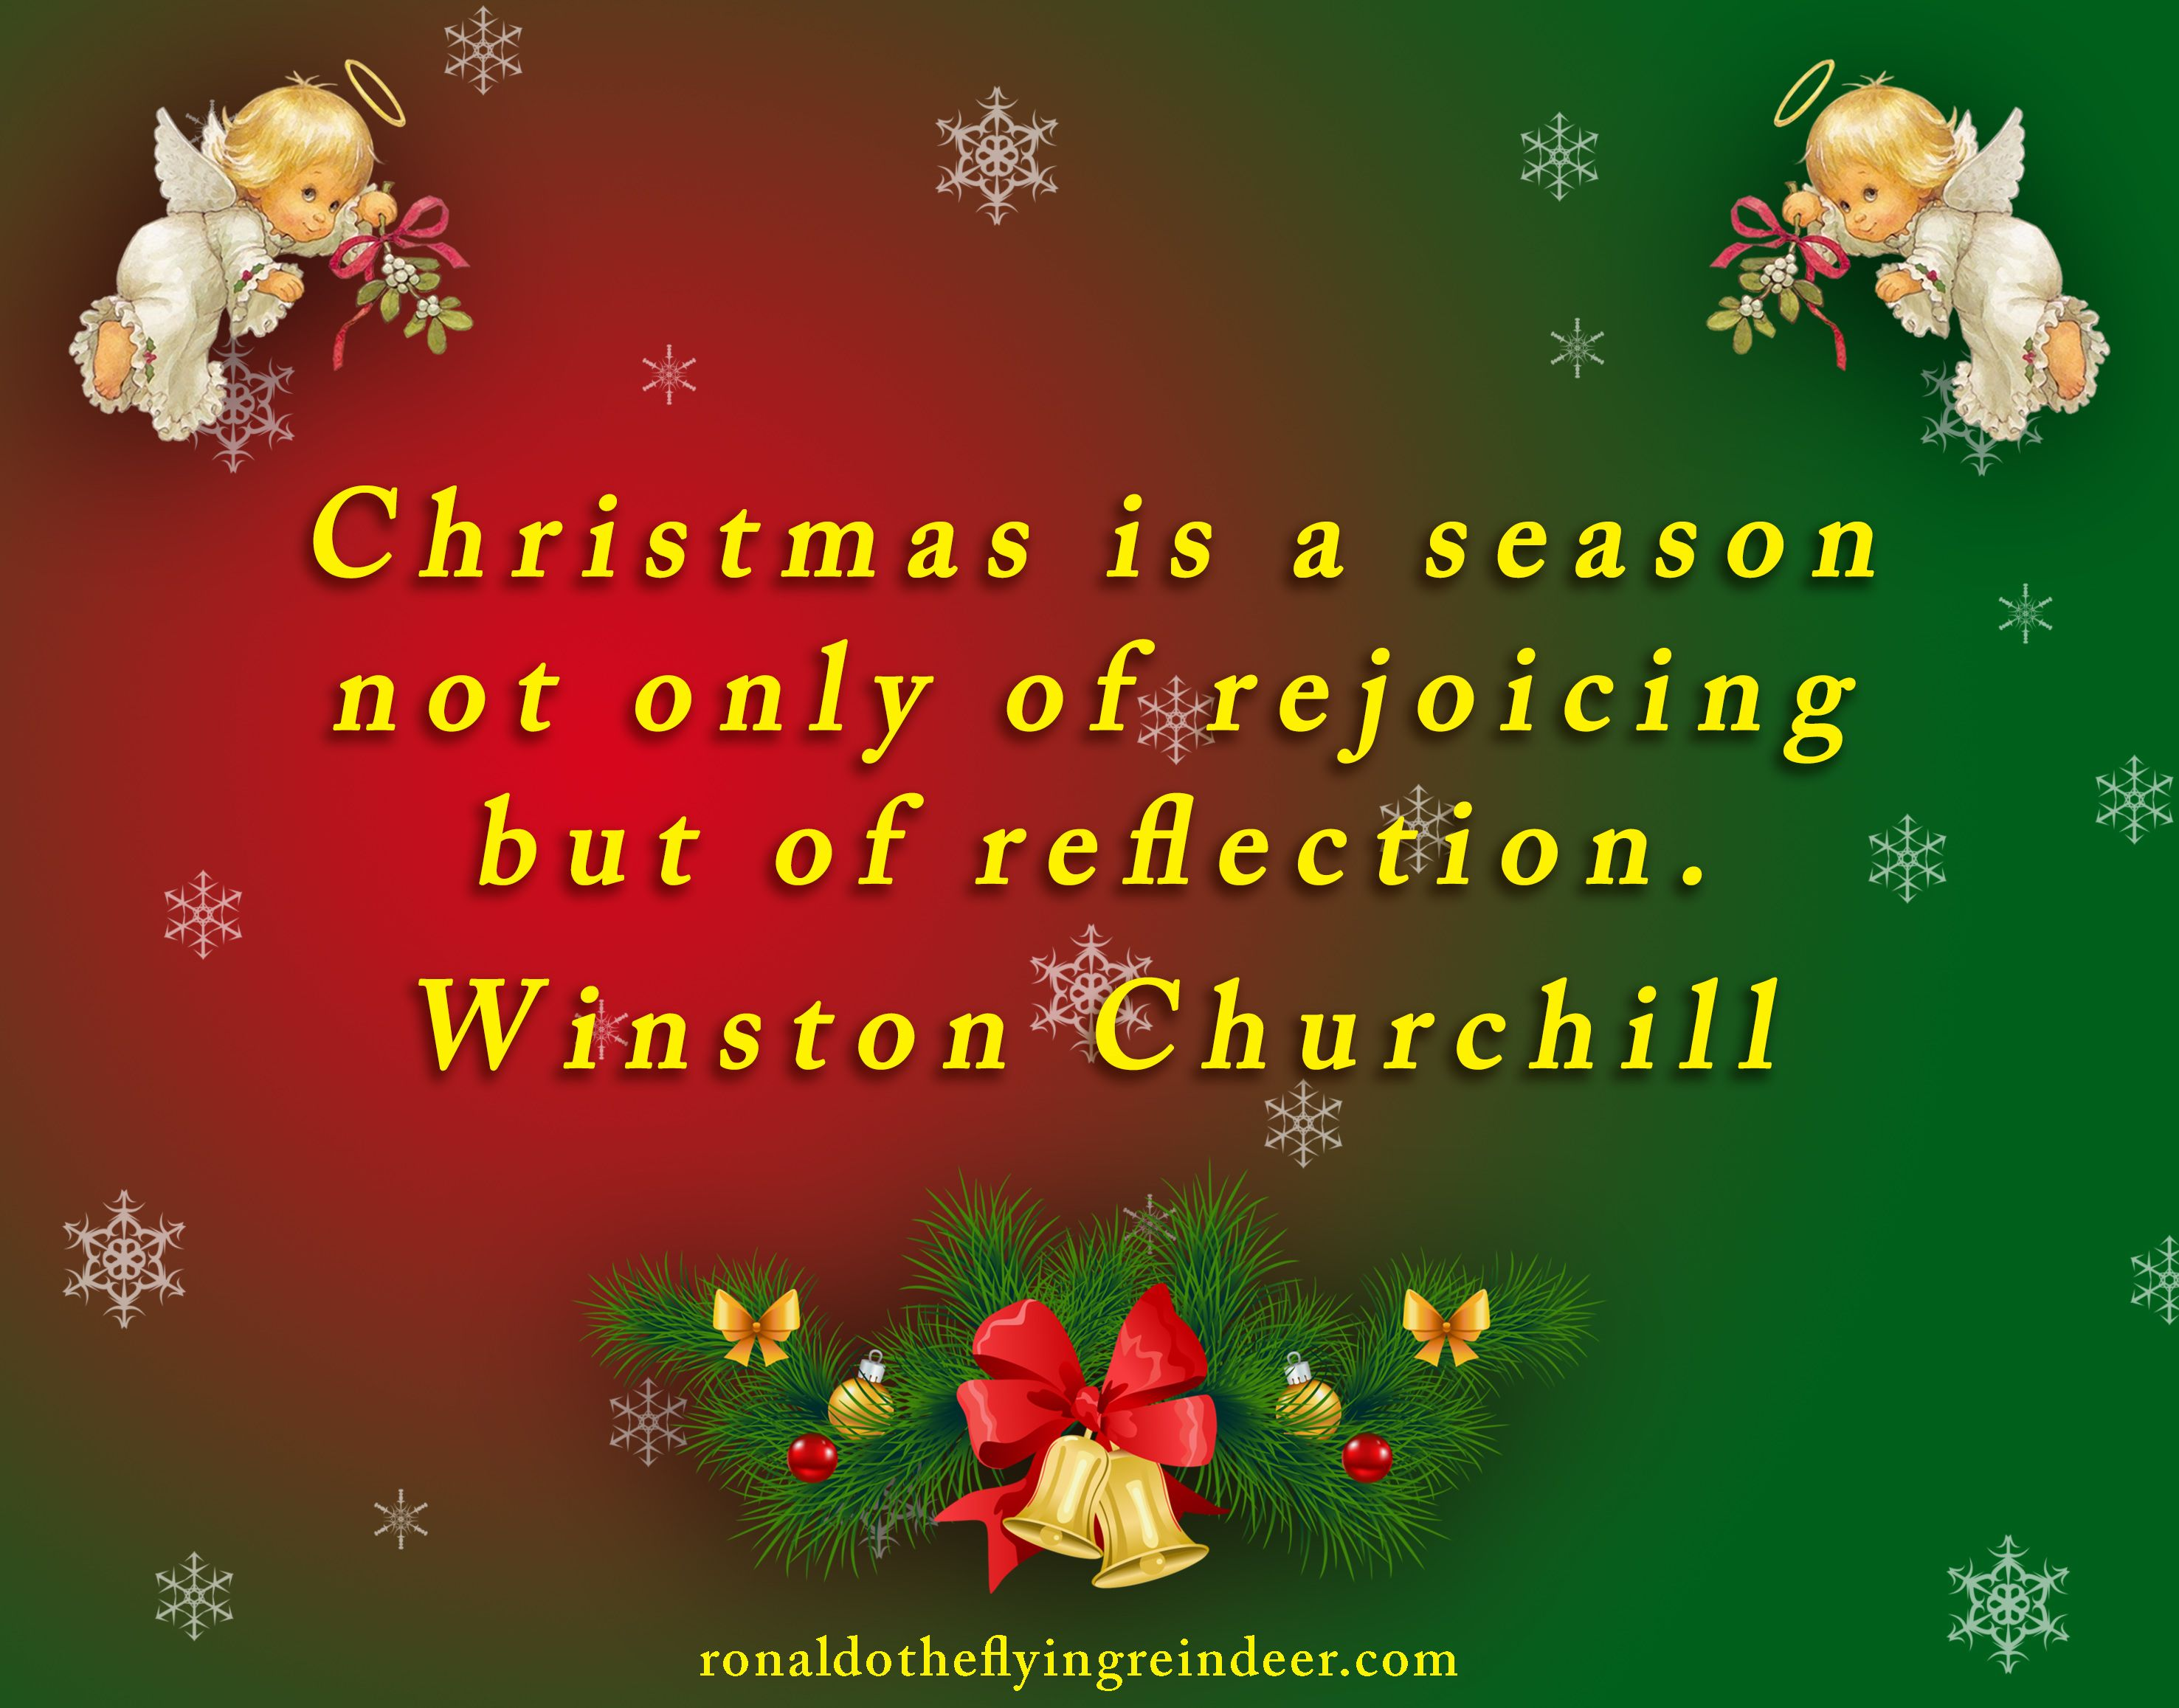 Quote christmas is a season not only of rejoicing but of reflection quote christmas is a season not only of rejoicing but of reflection winston churchill m4hsunfo